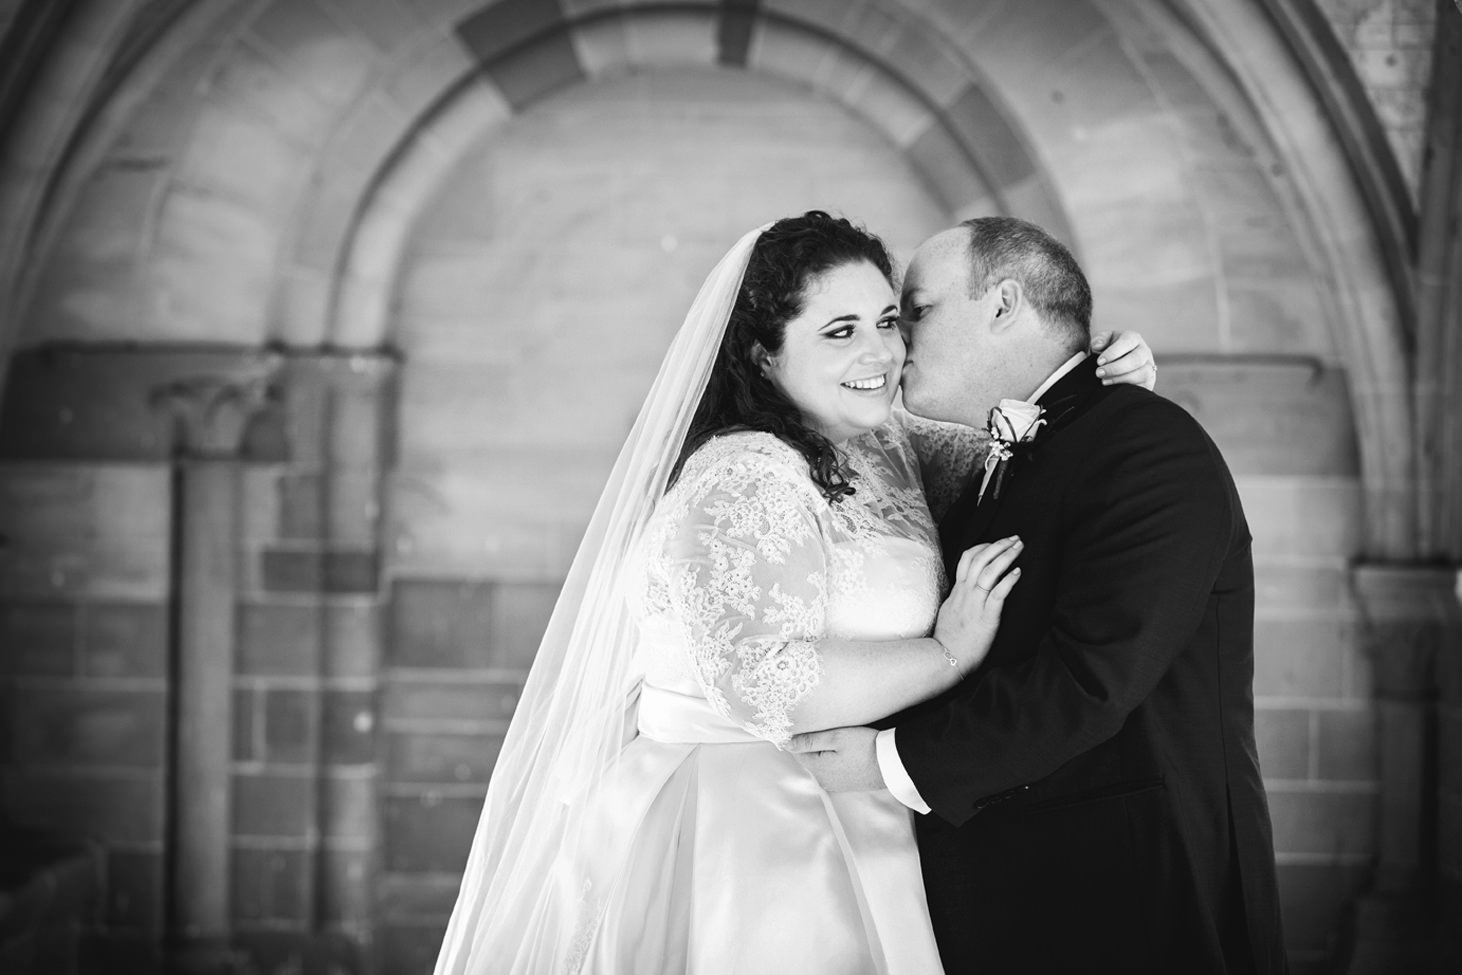 Coombe Abbey wedding photography Sarah Ann Wright 057